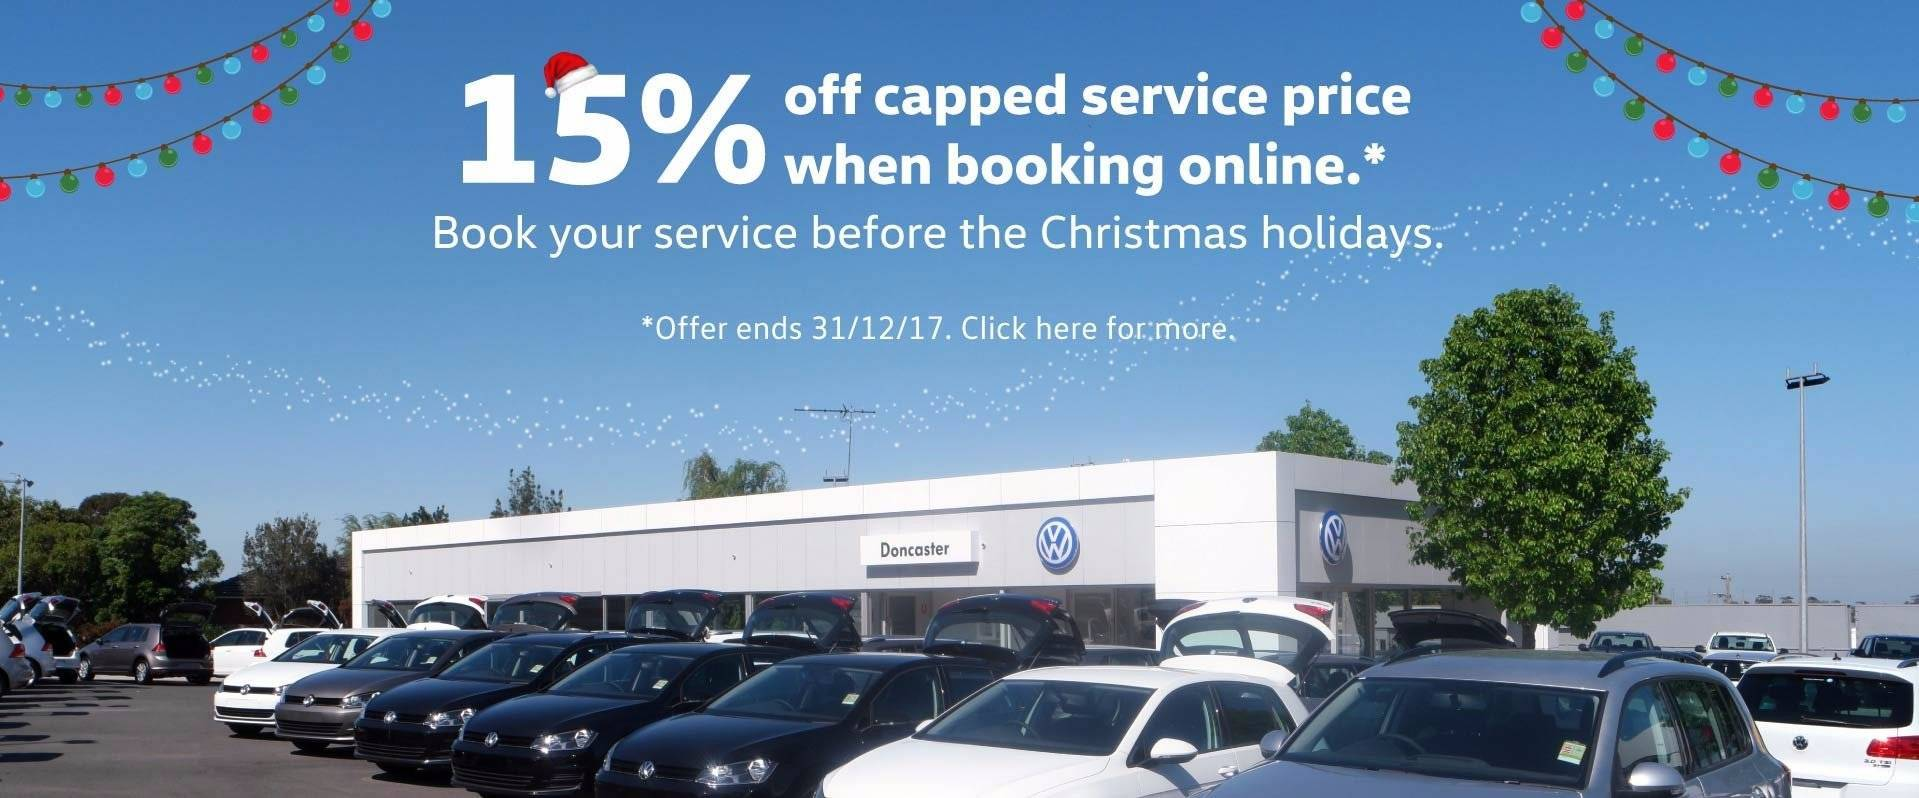 Doncaster Capped Price Service Discount